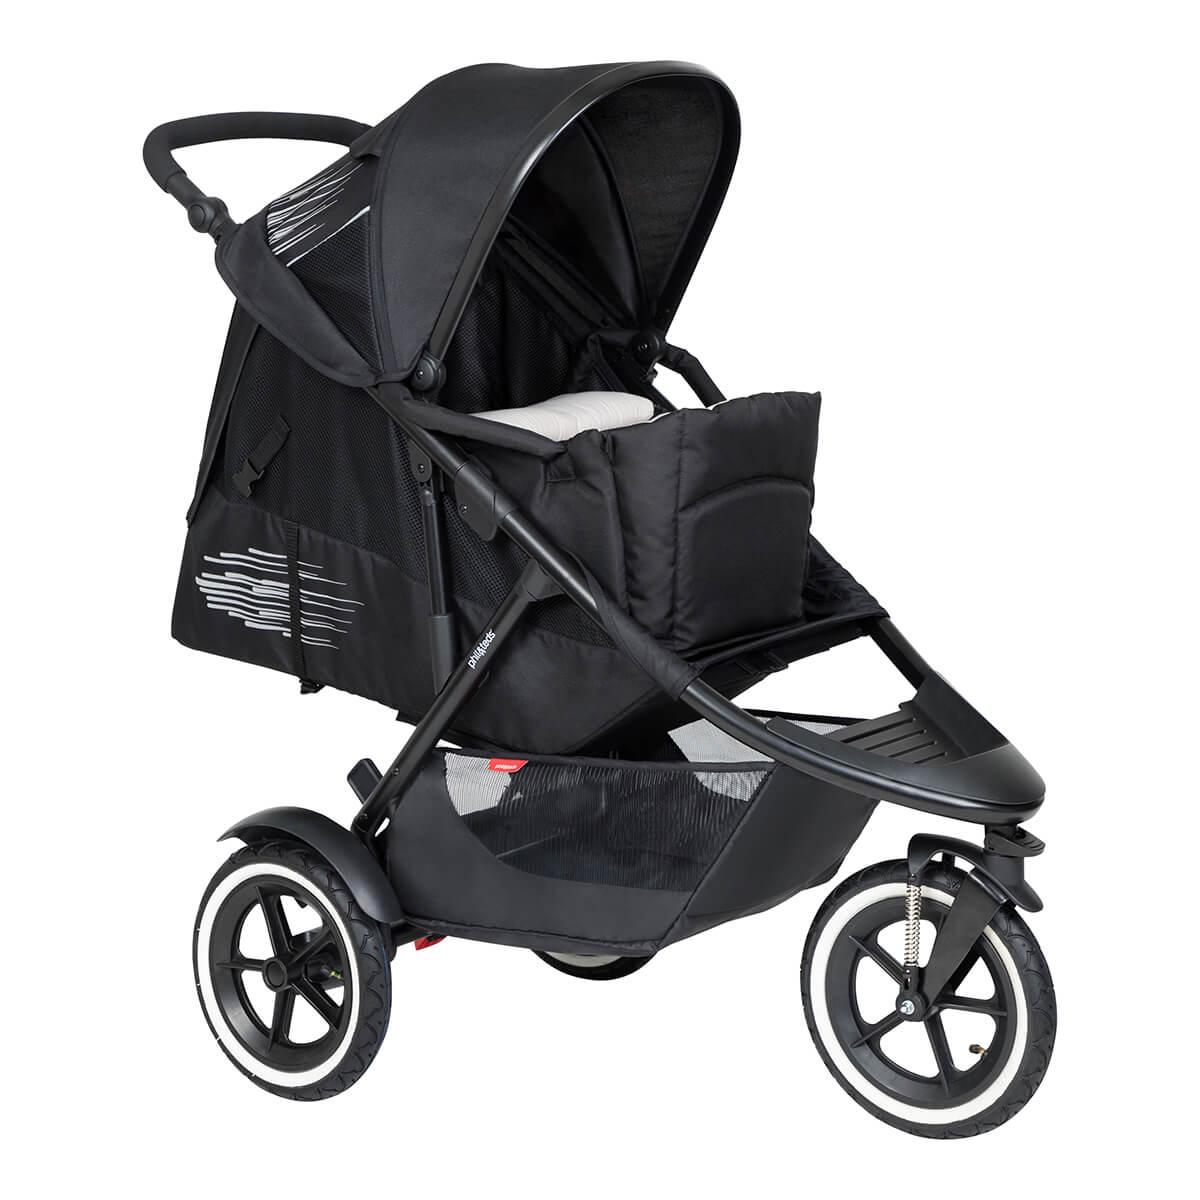 https://cdn.accentuate.io/4509866885217/19793938874538/philteds-sport-buggy-with-cocoon-full-recline-v1626485292519.jpg?1200x1200